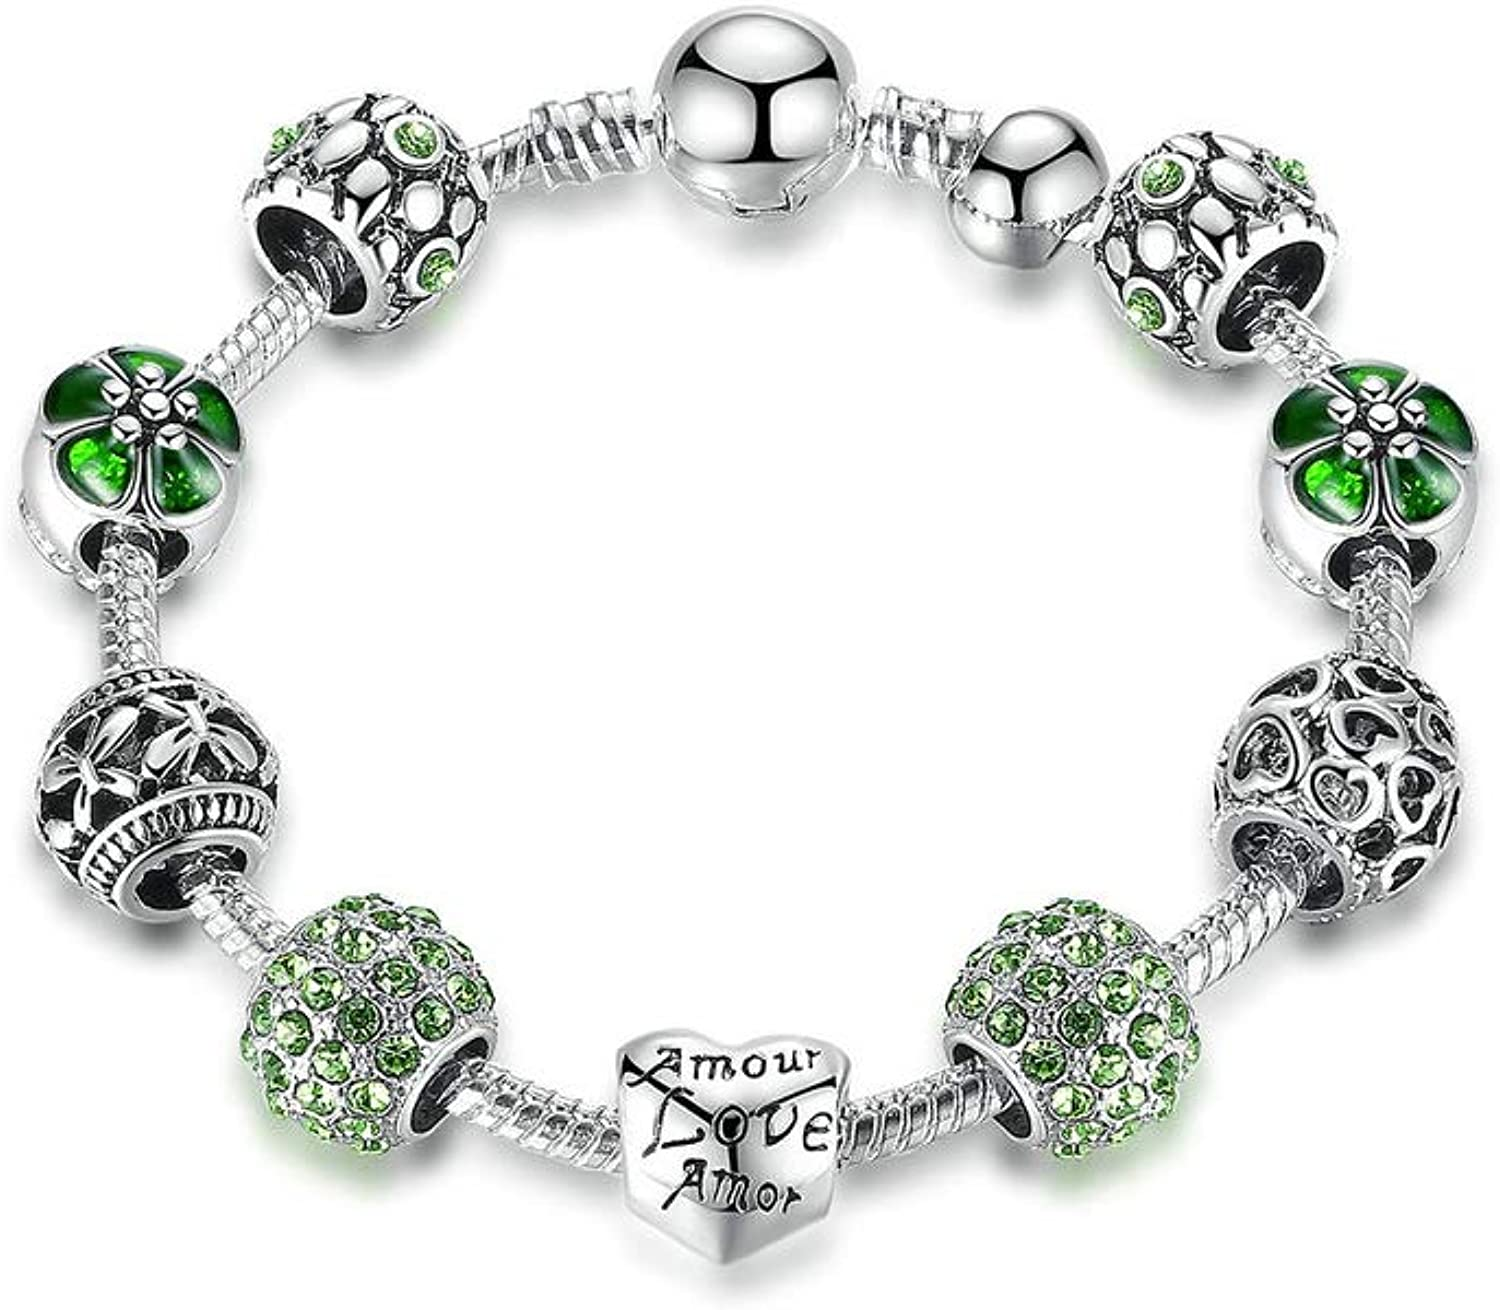 Mounobe Antique Silver Charm Bracelet /& Bangle with Love and Flower Beads Women Wedding Jewelry 4 Colors 18CM 20CM 21CM PA1455 PA1455 21cm